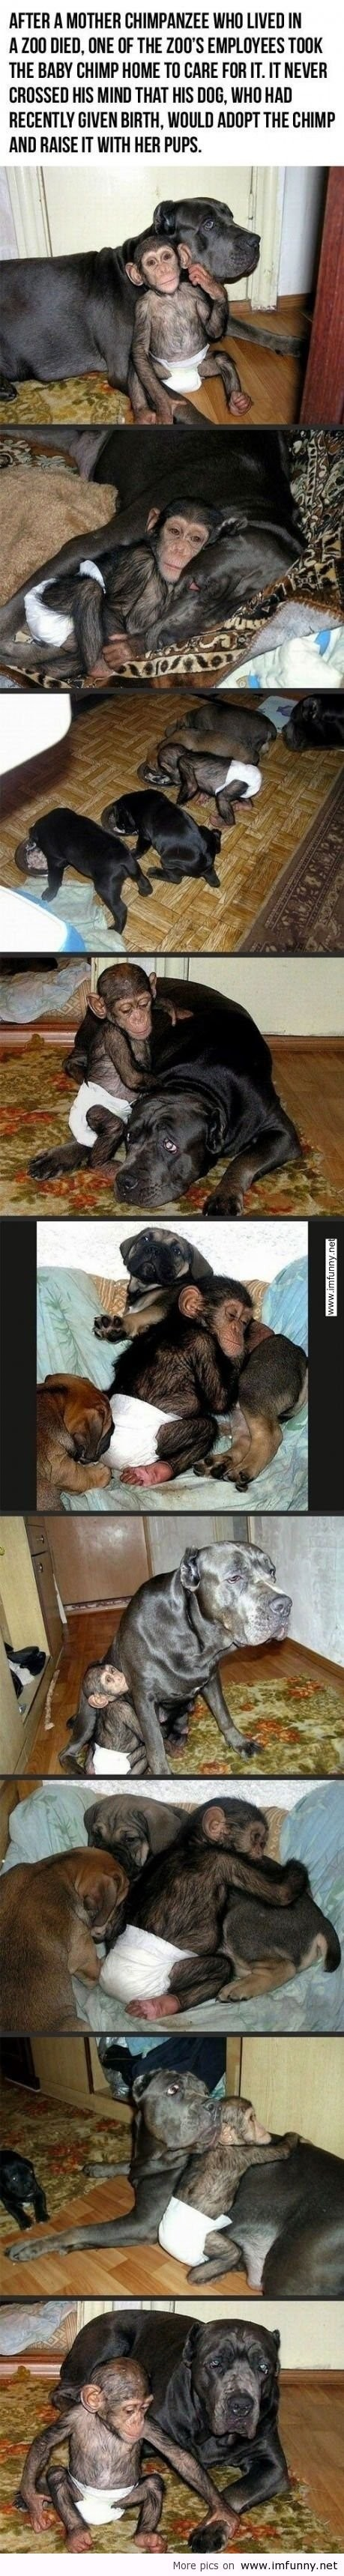 Orphan chimpanzee found a great new home and devoted, but unexpected parent comfort http://ow.ly/lx81E #LoveNature